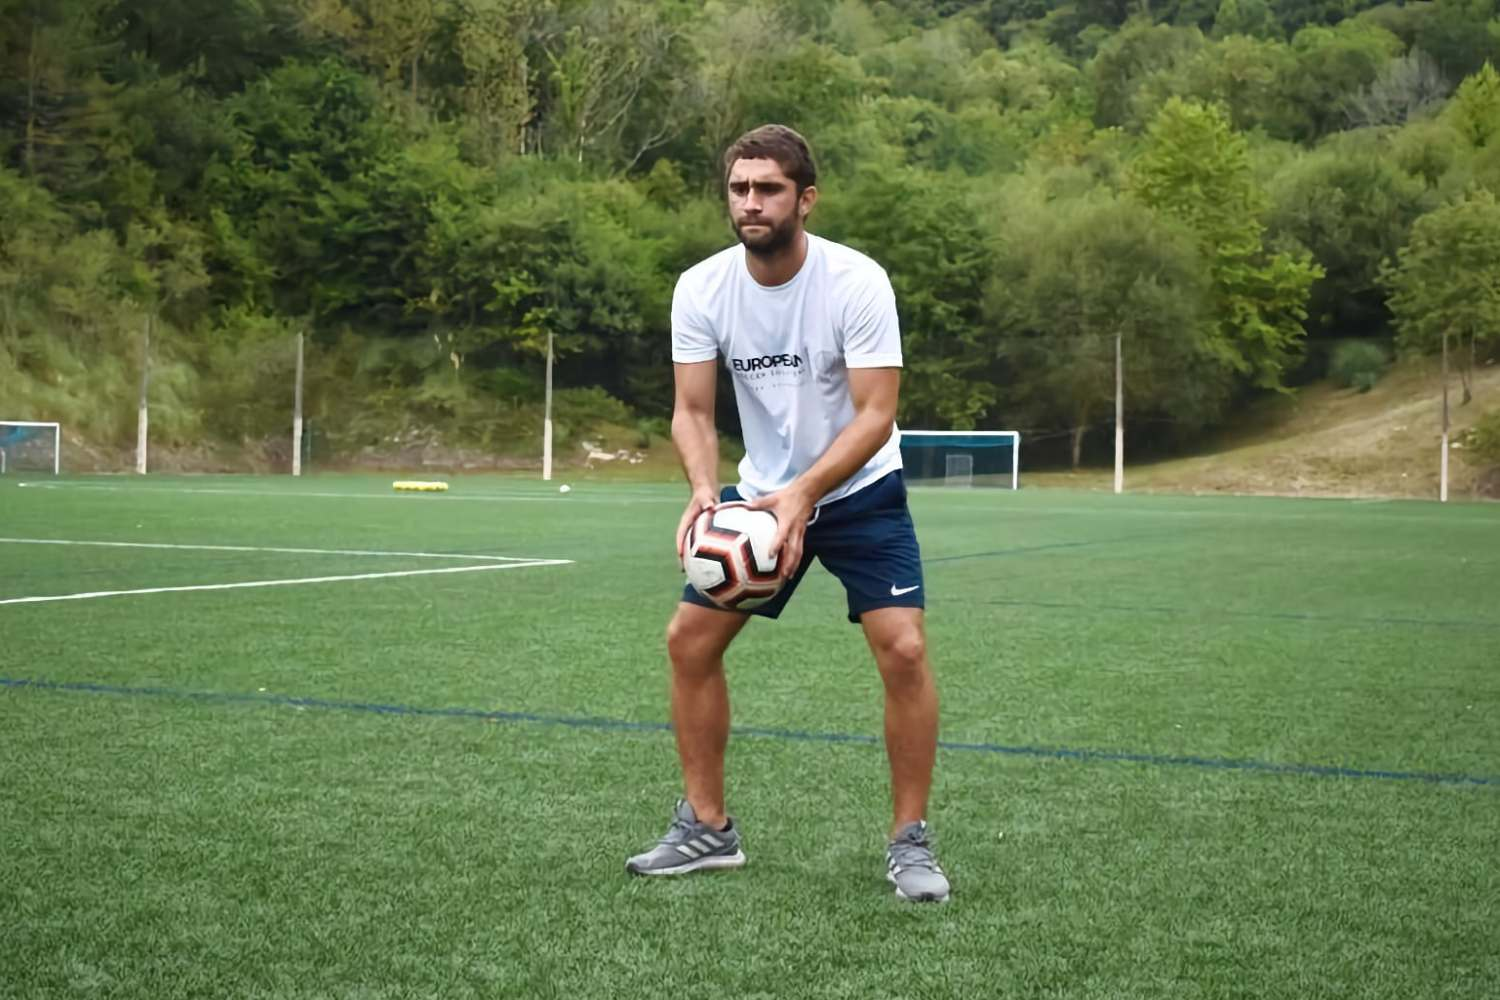 Work daily with ESS Technical Director Gorka Andres